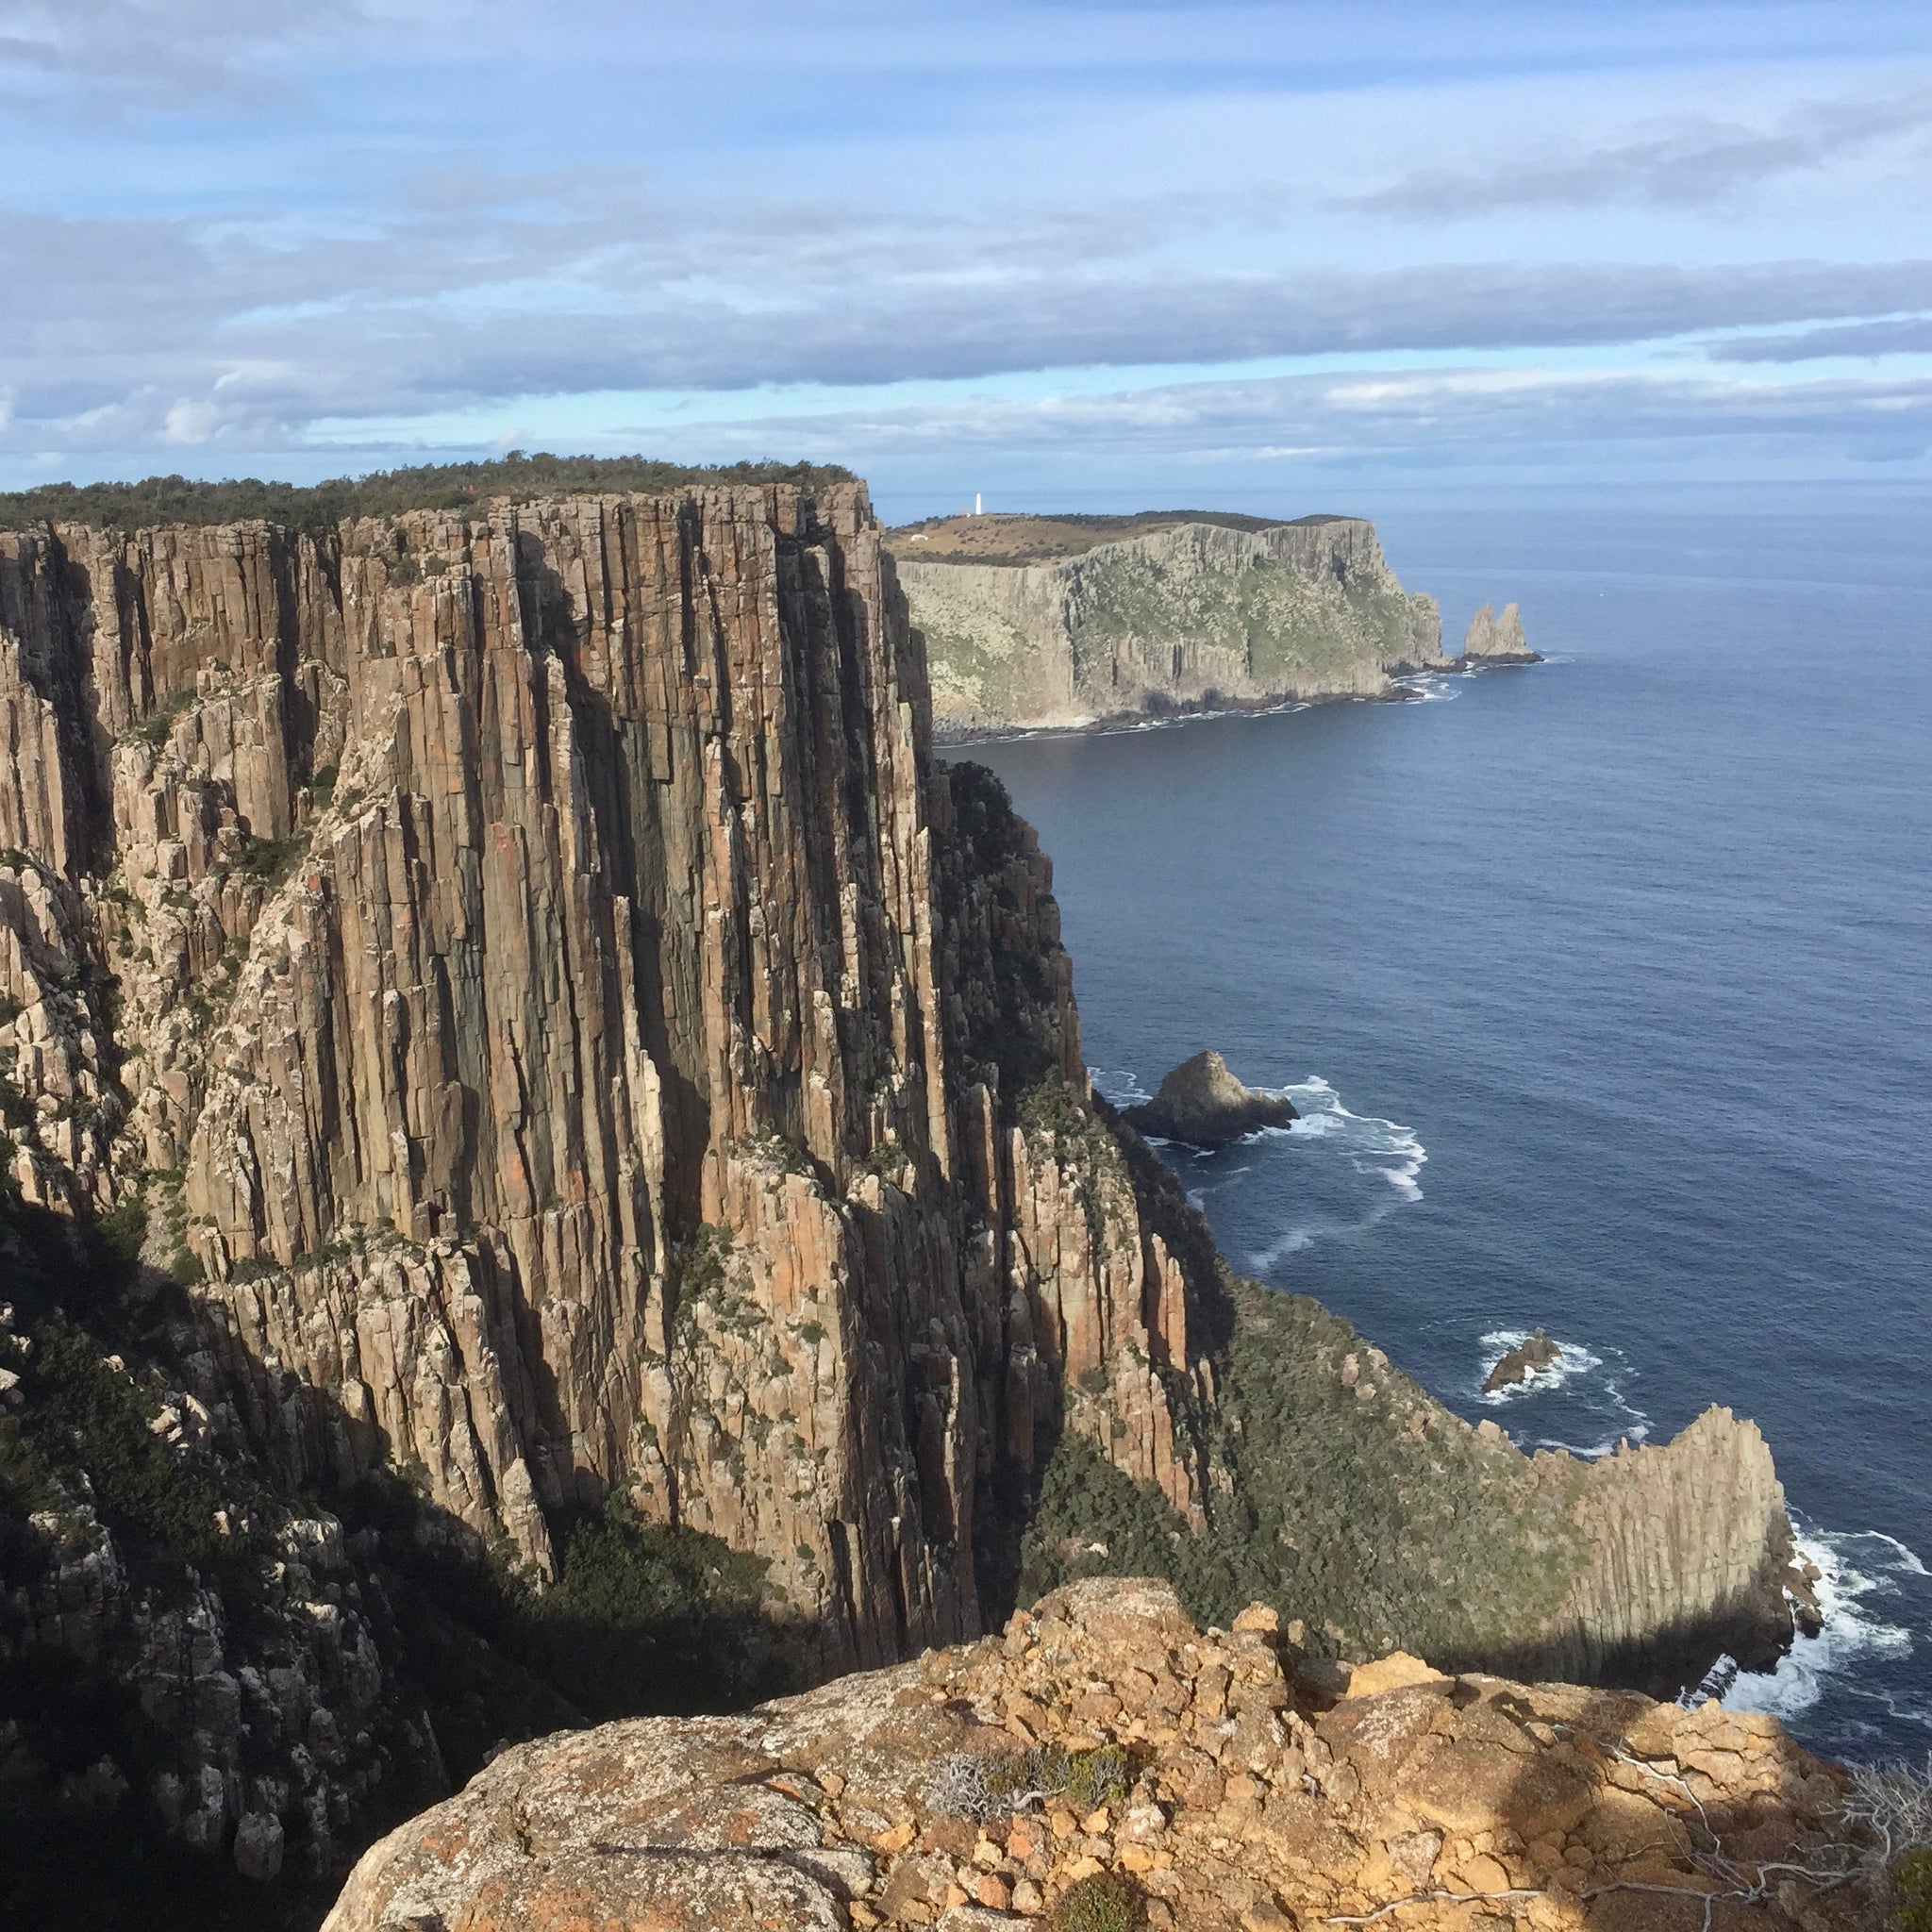 The Three Capes Track is one the most spectacular walks in Tasmania. The Three Capes Track is a 3 day walk in the South East of Tasmania. Walking the Three Capes Track can be done all year round and the crowds are thin in the middle of the year for Winter